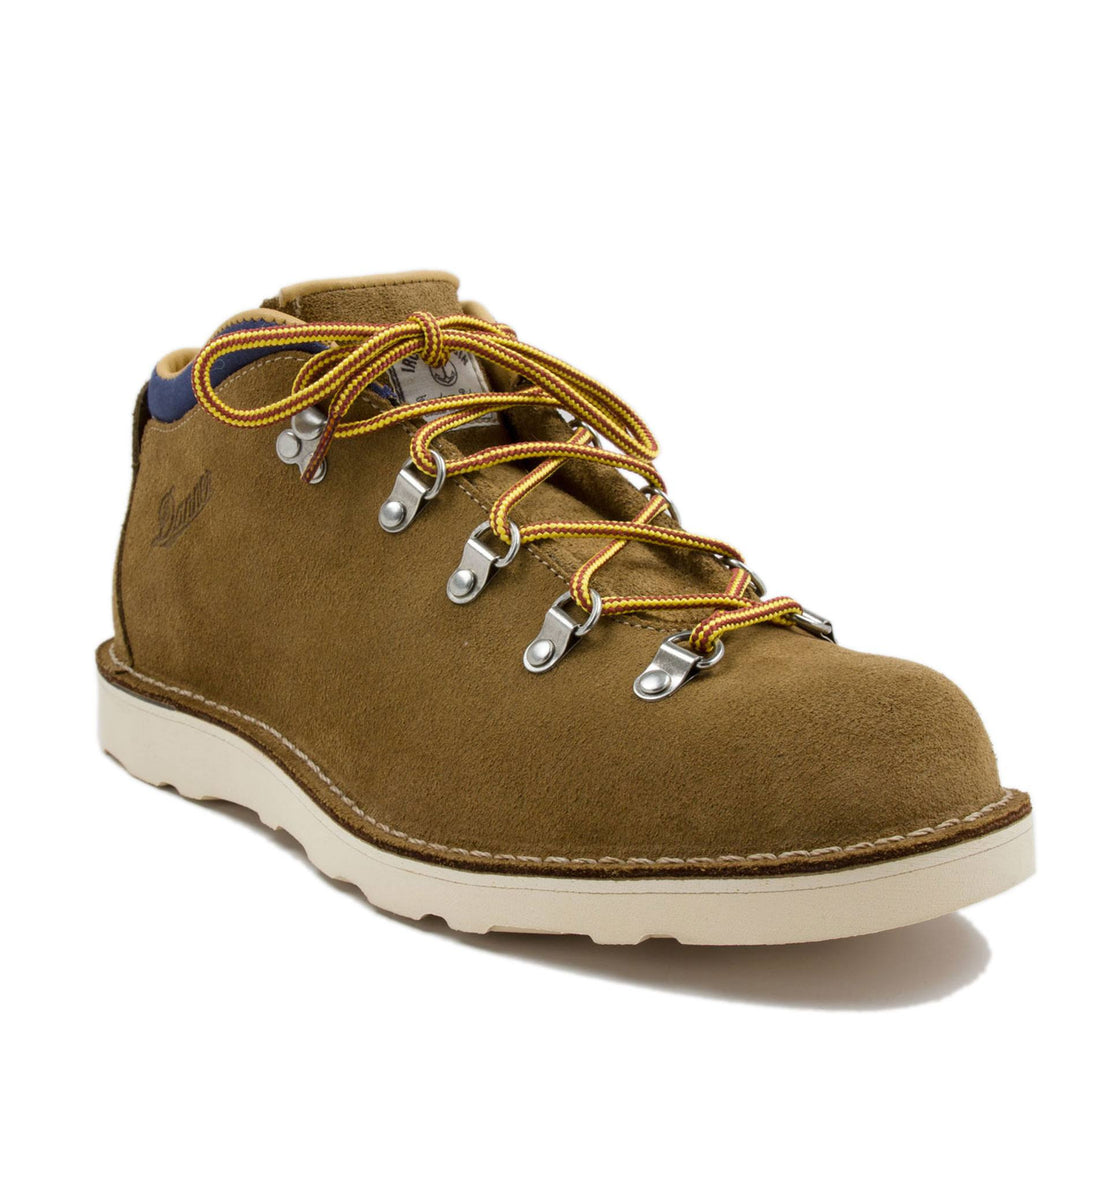 INR x Danner Tramline Boots - Shoes: Men's: Boots - Iron and Resin